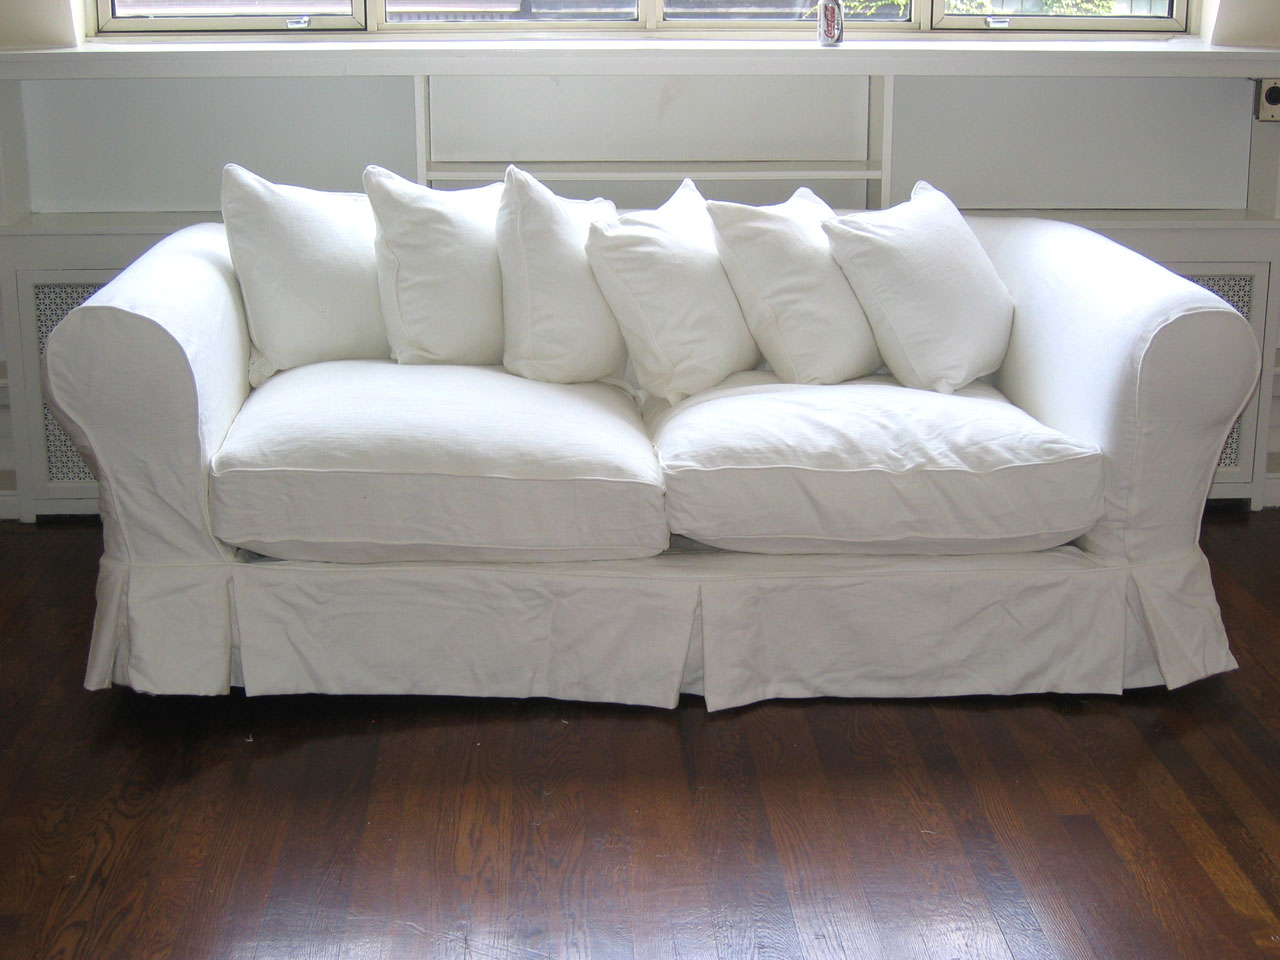 What Factors To Consider When Looking At A New Couch Hms